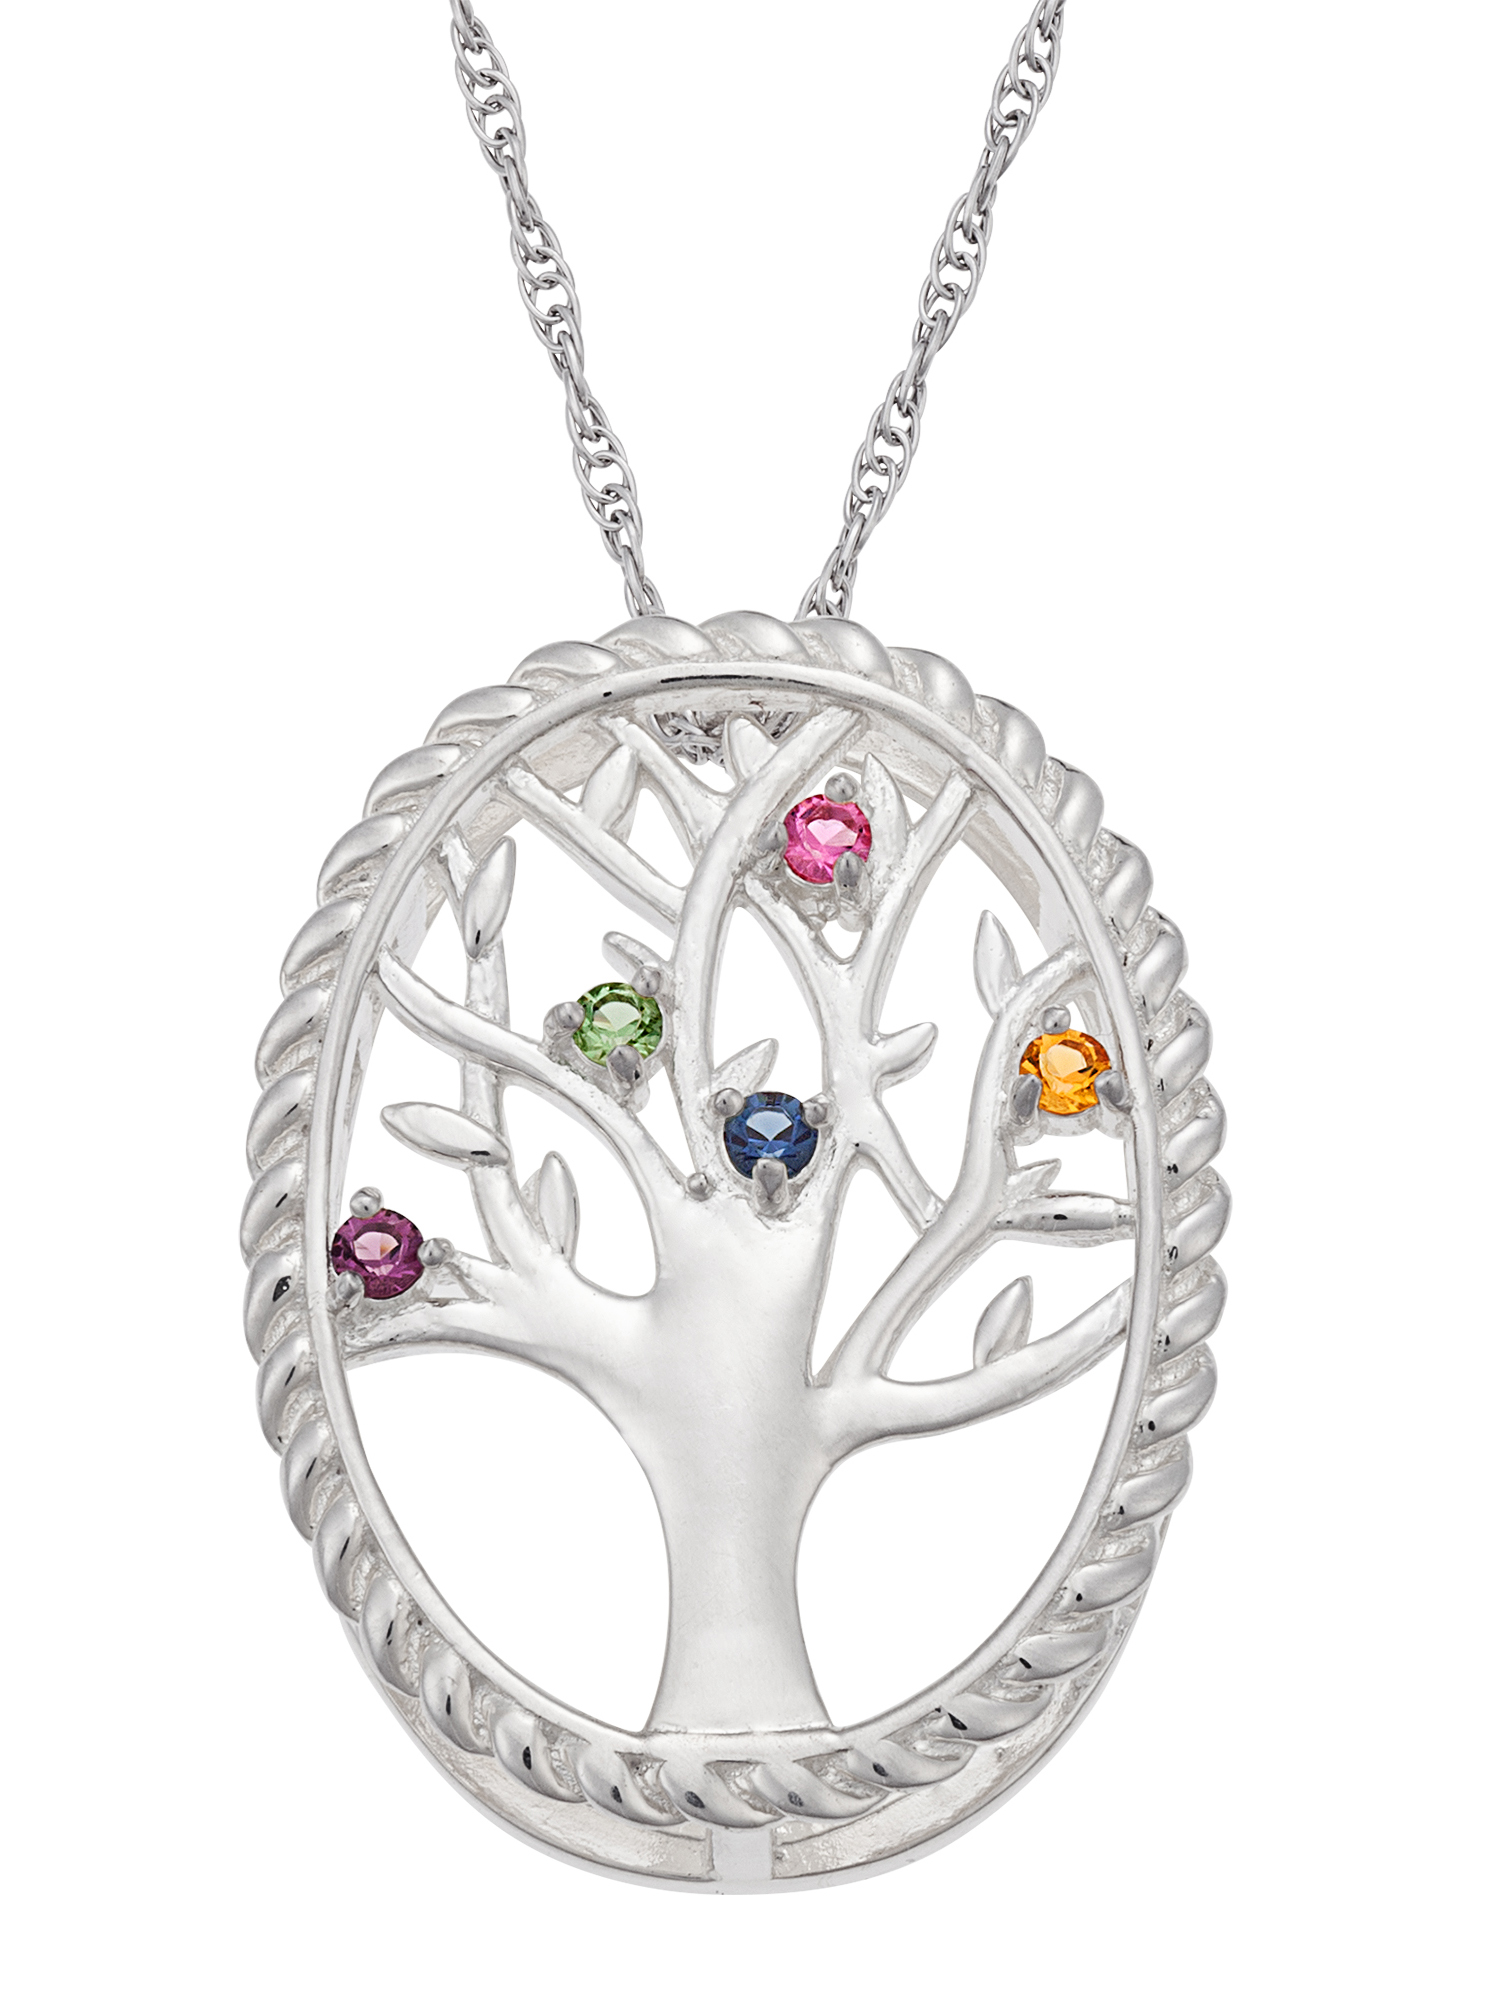 Personalized Sterling Silver or 14K Gold over Silver Family Birthstone Tree Necklace, 20""